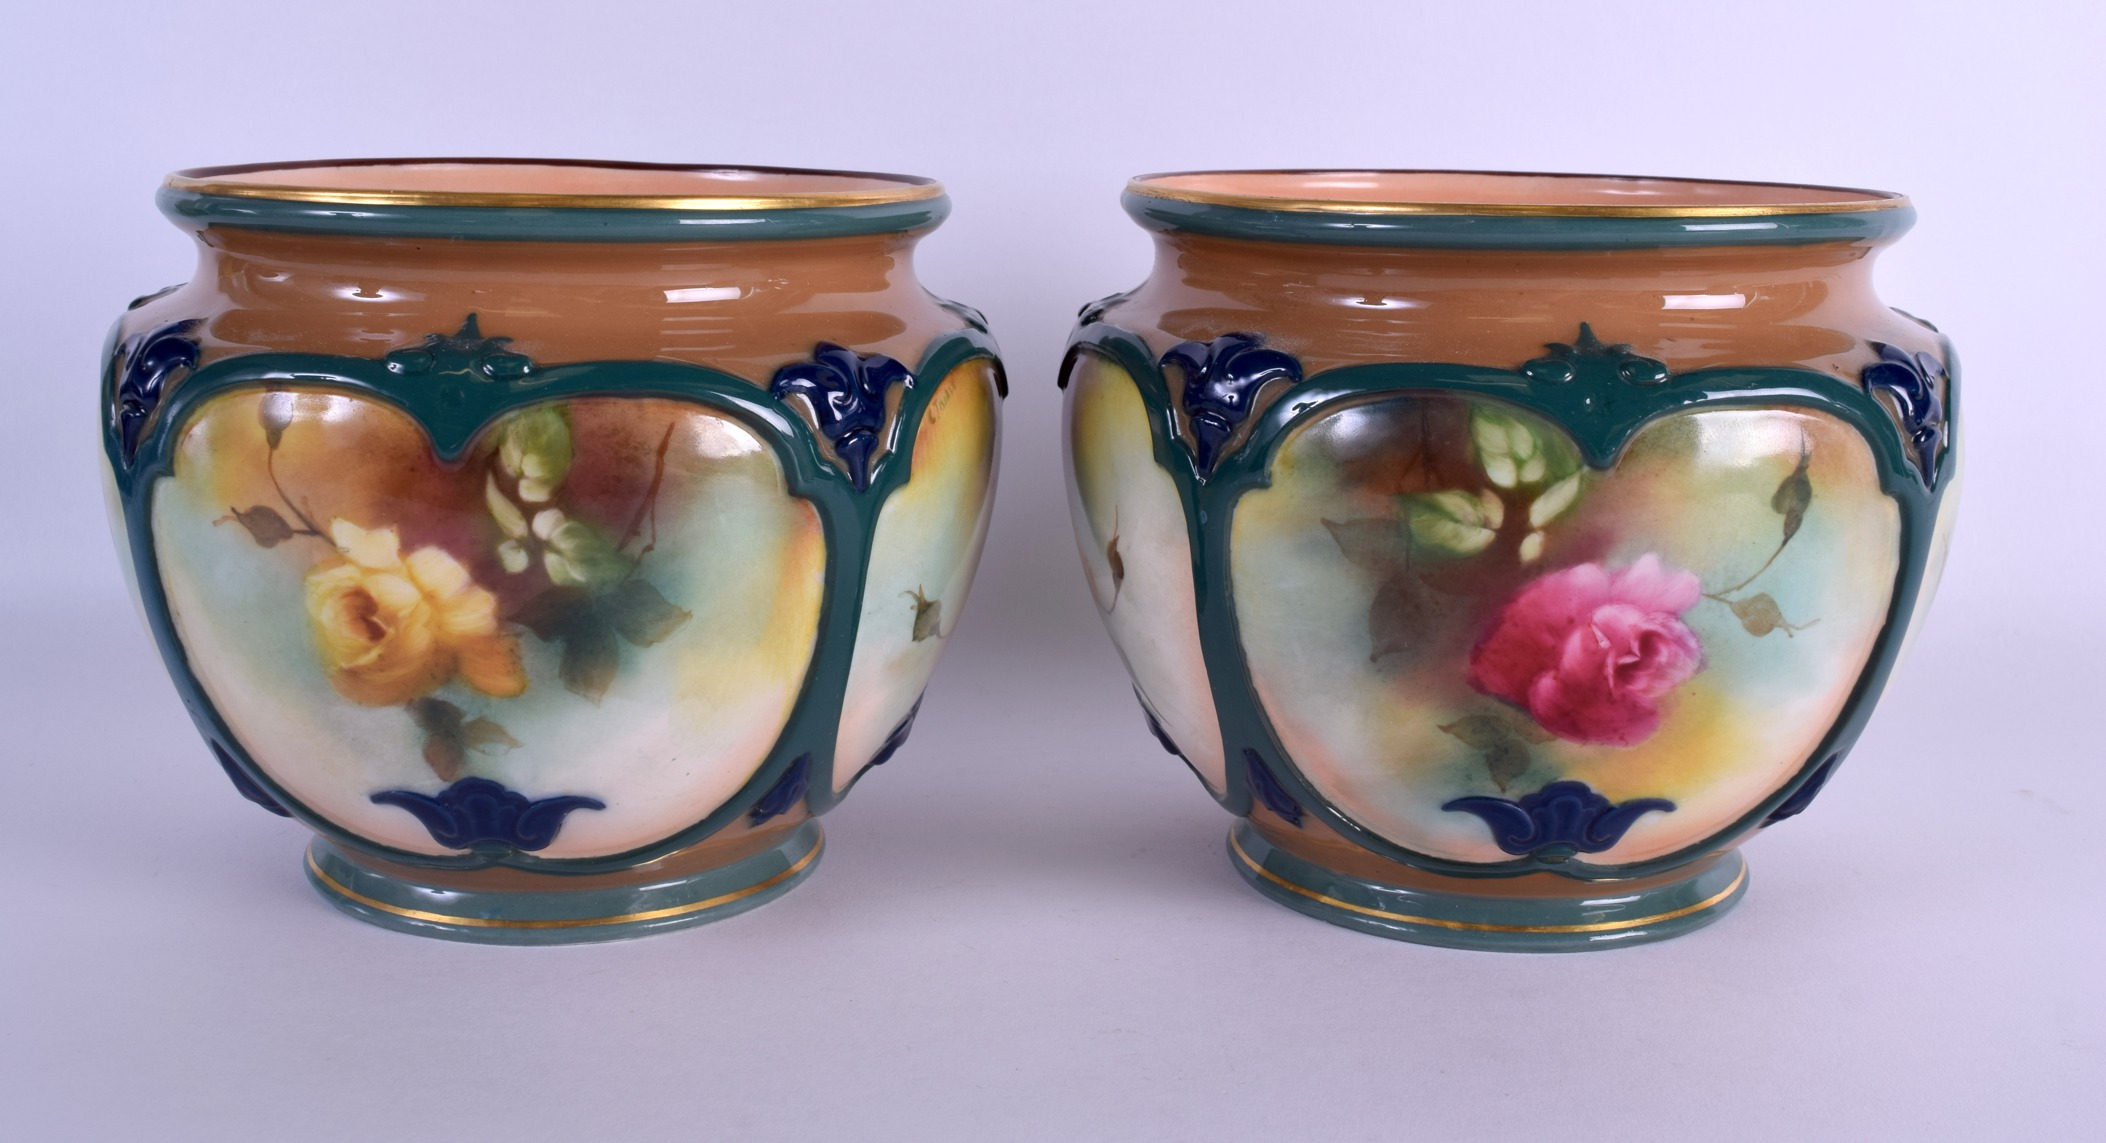 Lot 58 - A GOOD PAIR OF 19TH CENTURY ROYAL WORCESTER PORCELAIN BOWLS painted with rose buds by C Tisdale.